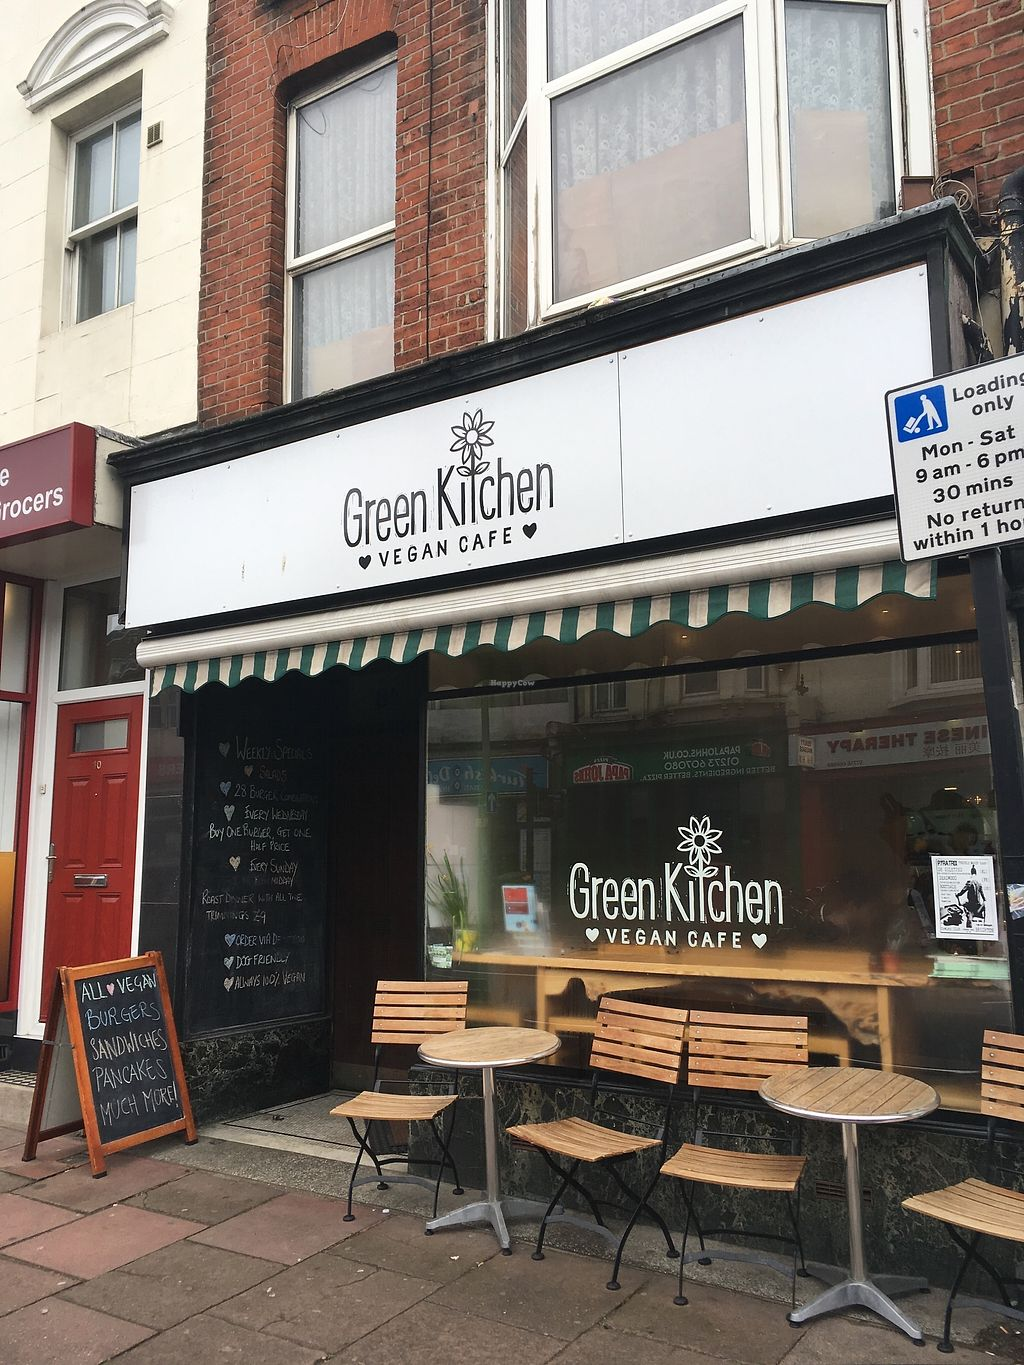 """Photo of Green Kitchen  by <a href=""""/members/profile/jojoinbrighton"""">jojoinbrighton</a> <br/>Green Kitchen <br/> August 5, 2017  - <a href='/contact/abuse/image/76632/288979'>Report</a>"""